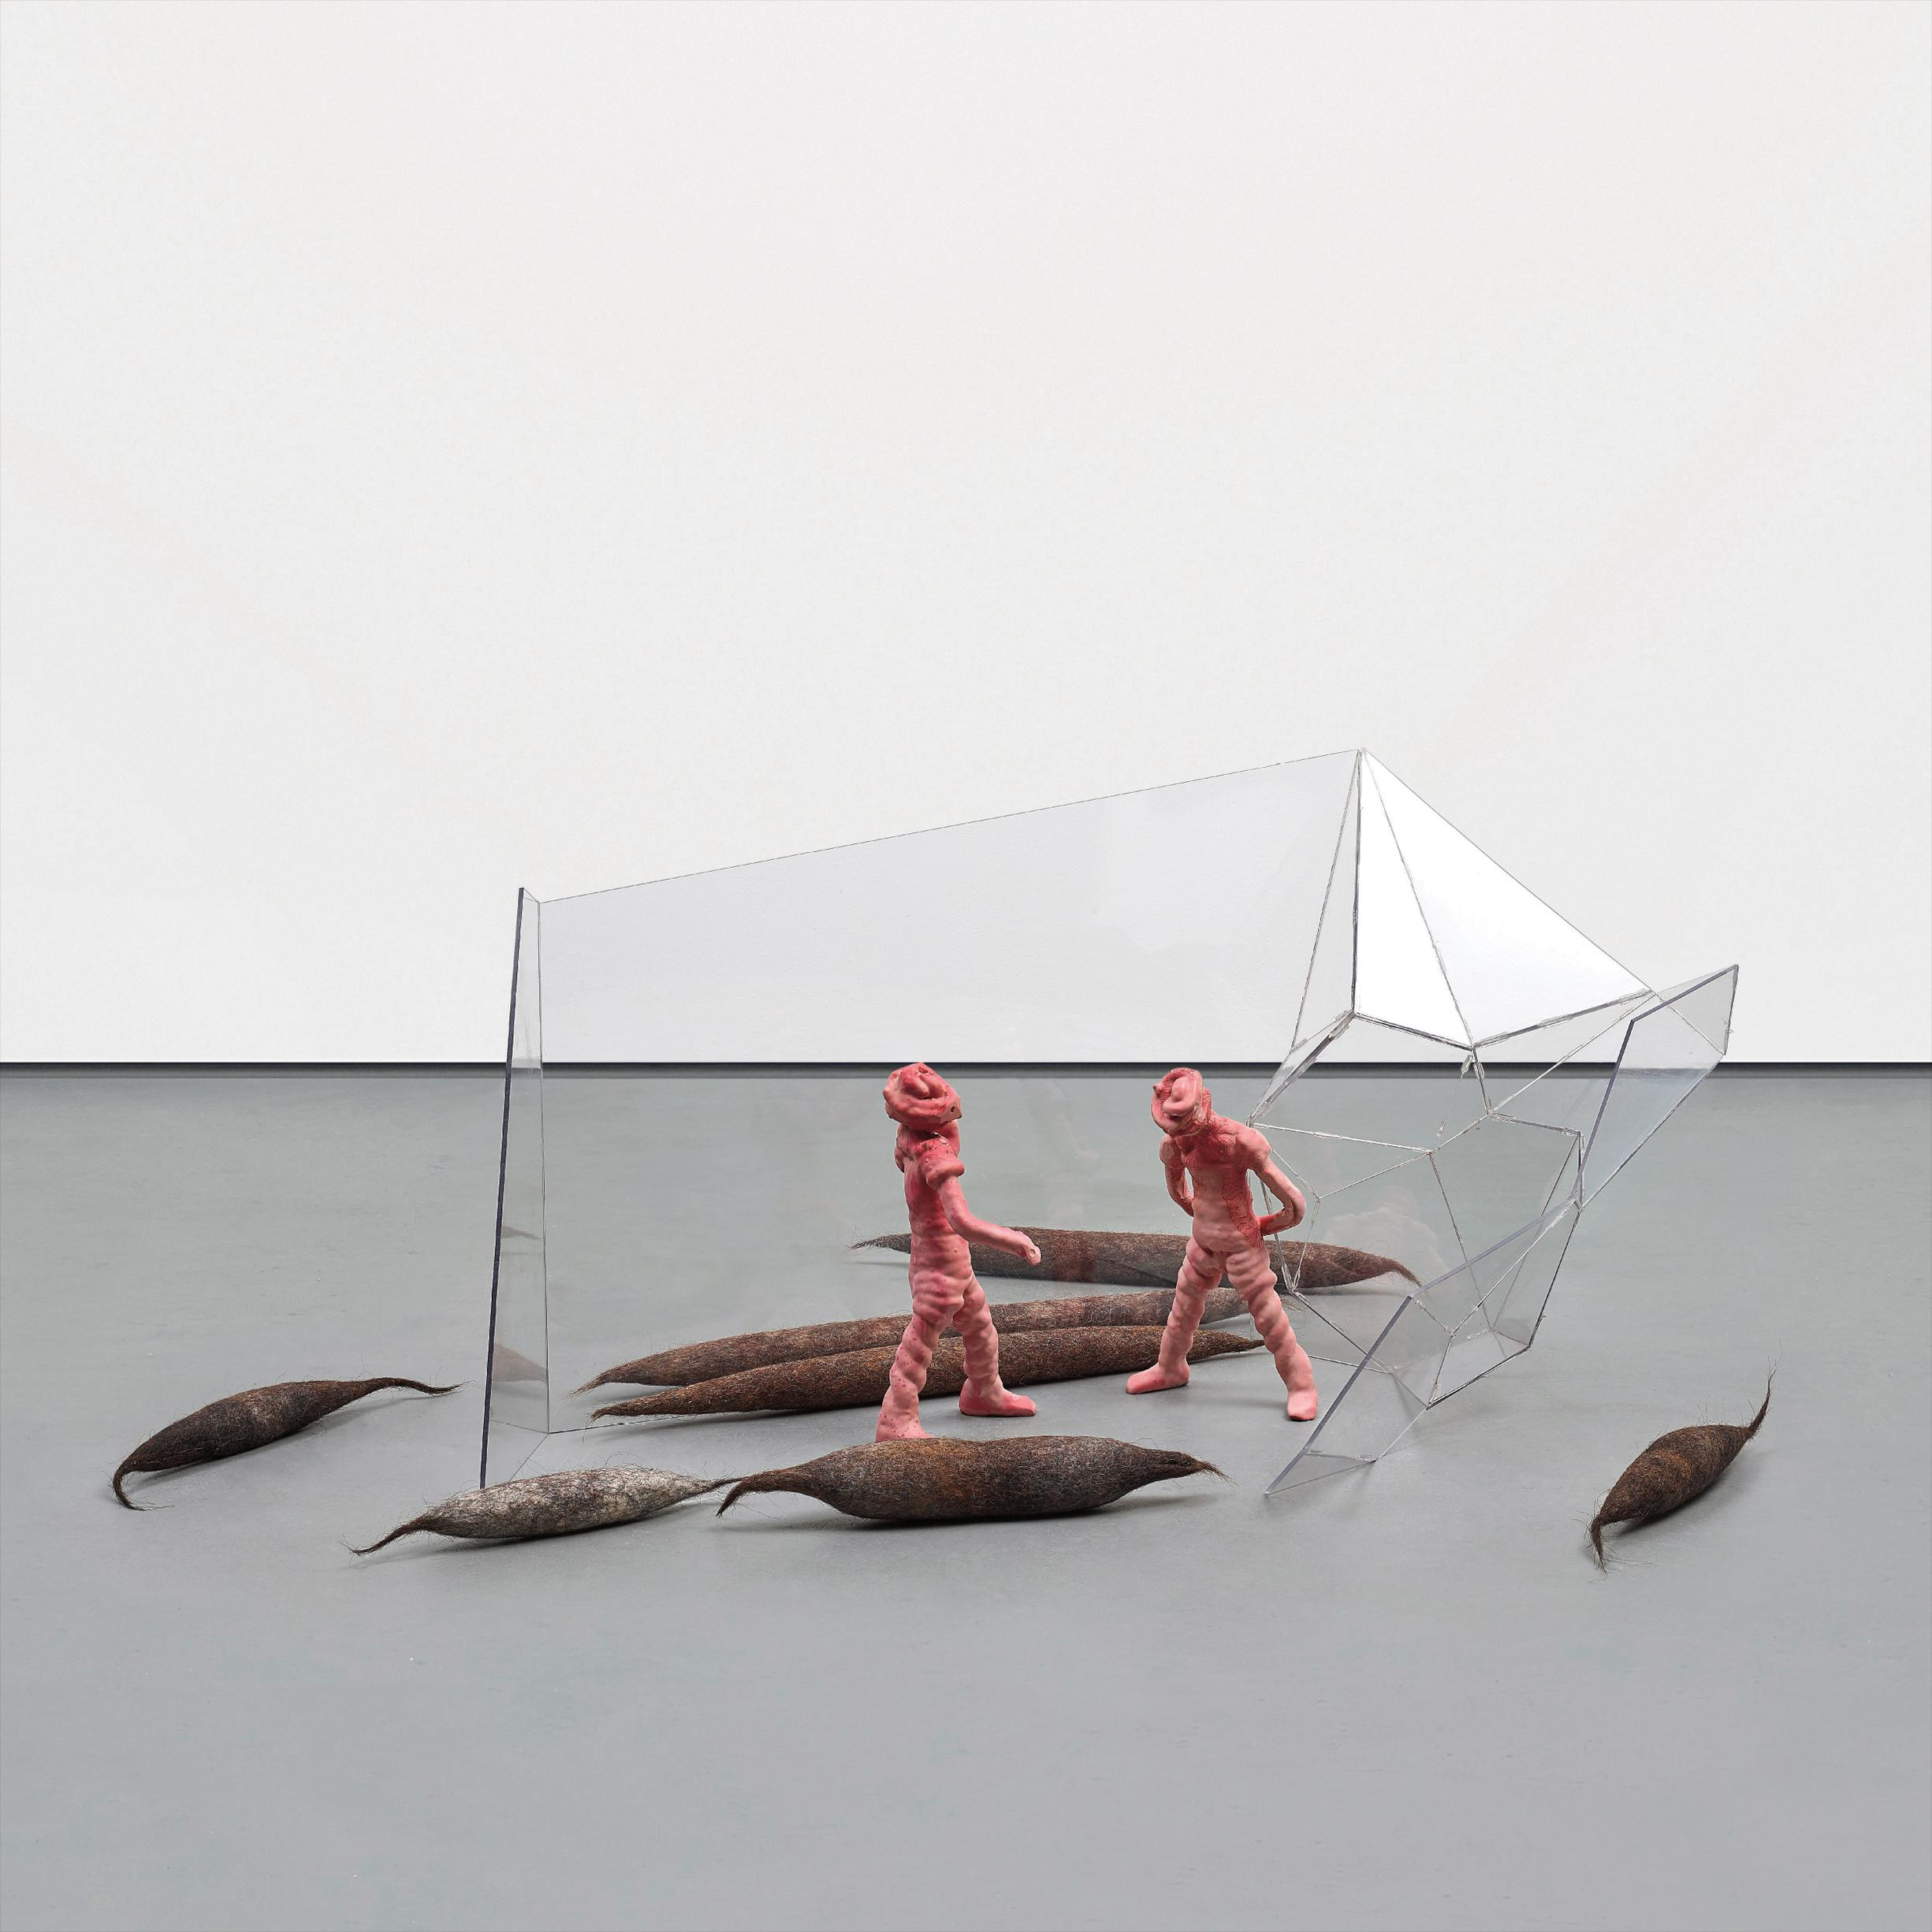 Richard Deacon And Thomas Schutte - Them And Us (X)-1995